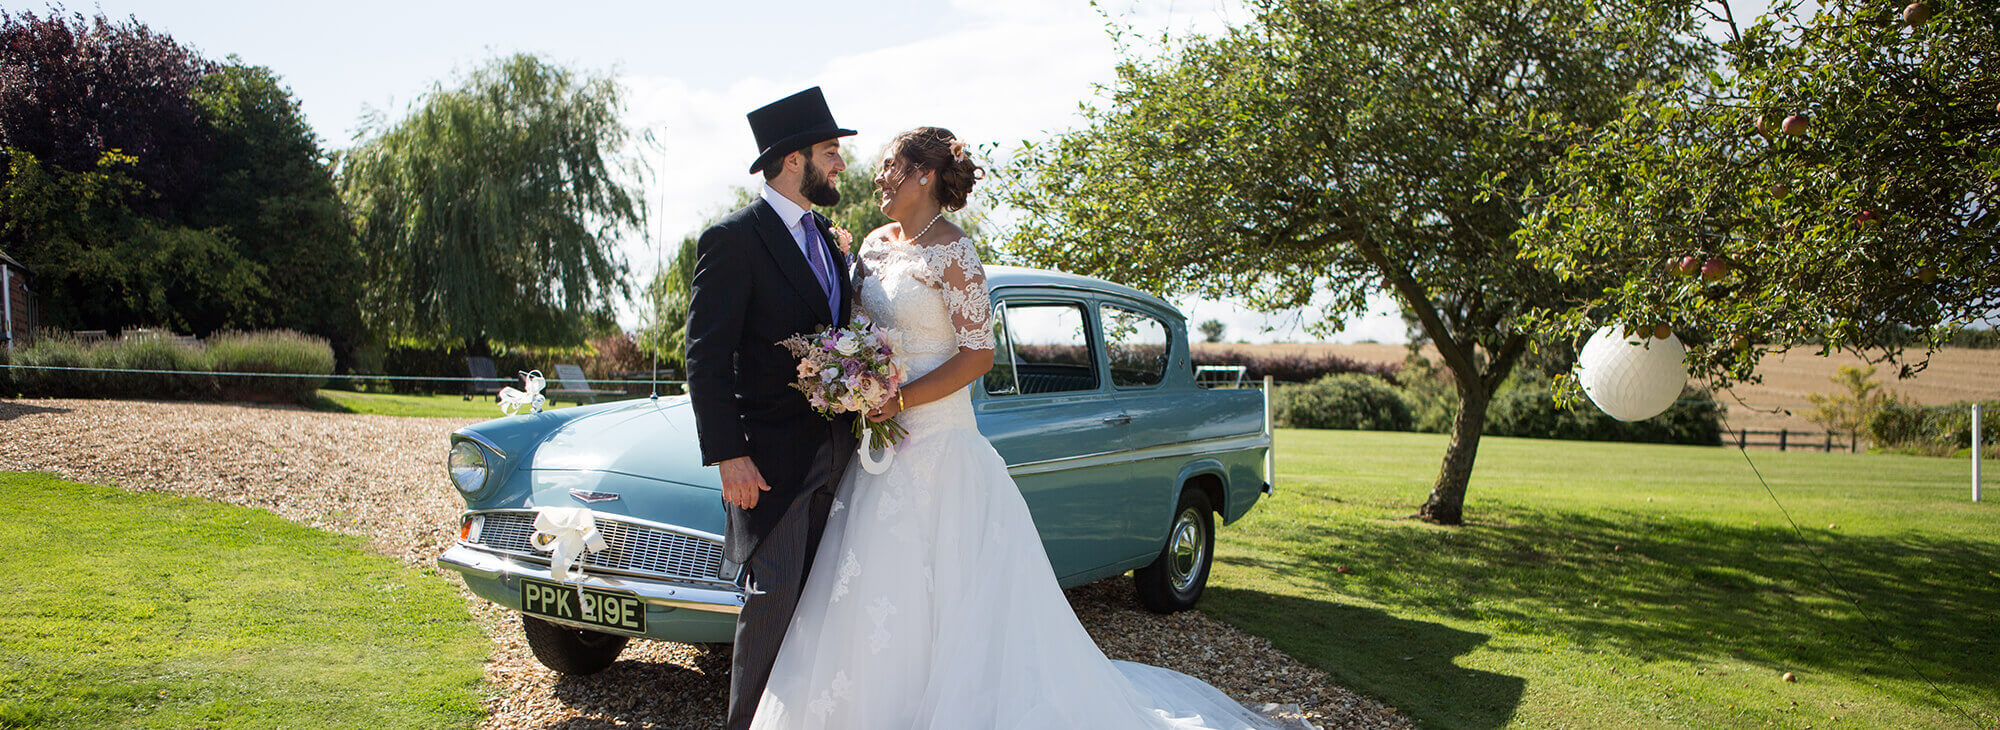 Happy newlyweds smiling in front of vintage car